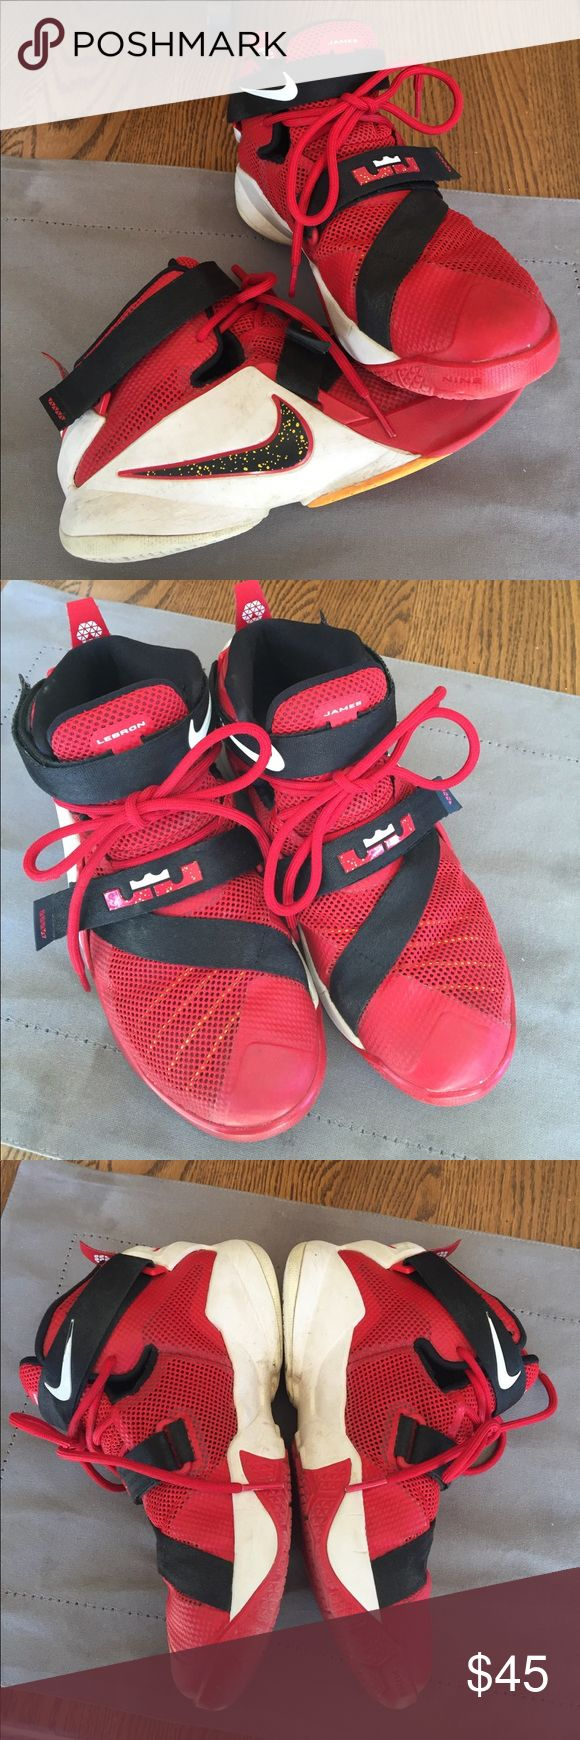 Nike Lebron James red boys high top shoes My son wore these for one season - great used condition. Boys size 4.5 Nike Lebron James Shoes Sneakers